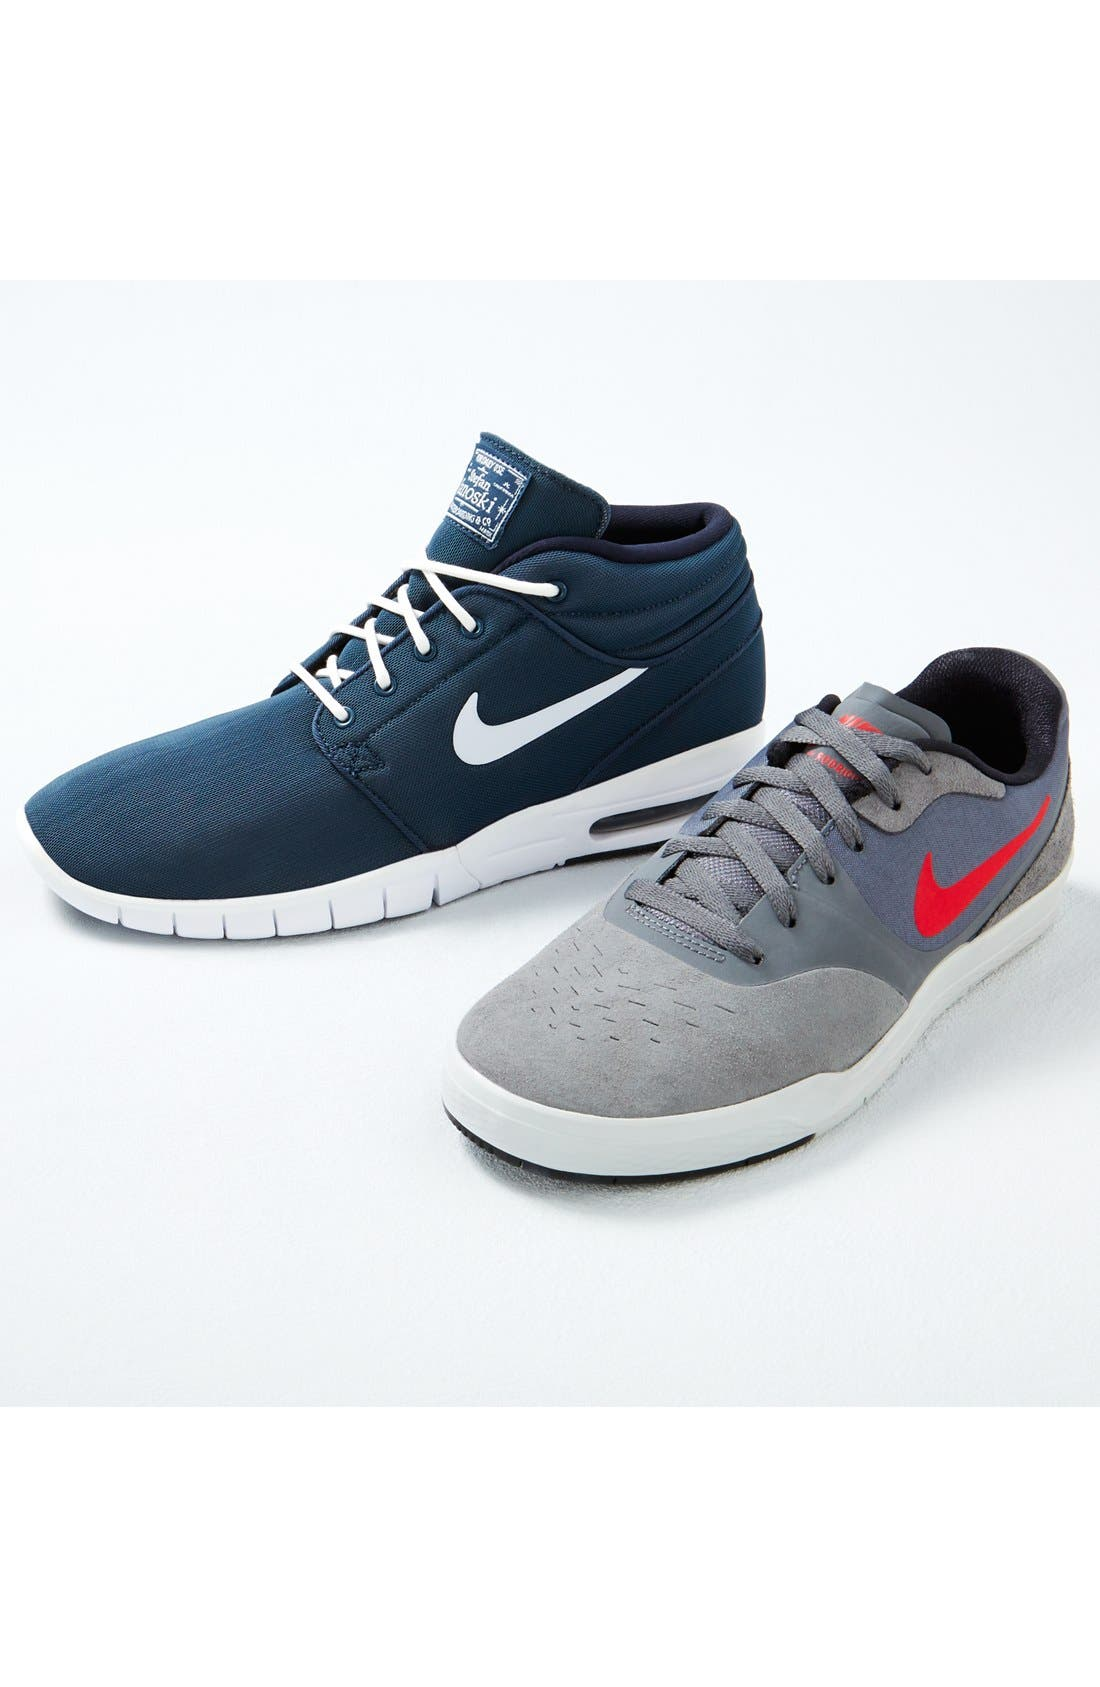 SB Stefan Janoski Max Mid Skate Shoe,                             Alternate thumbnail 9, color,                             005